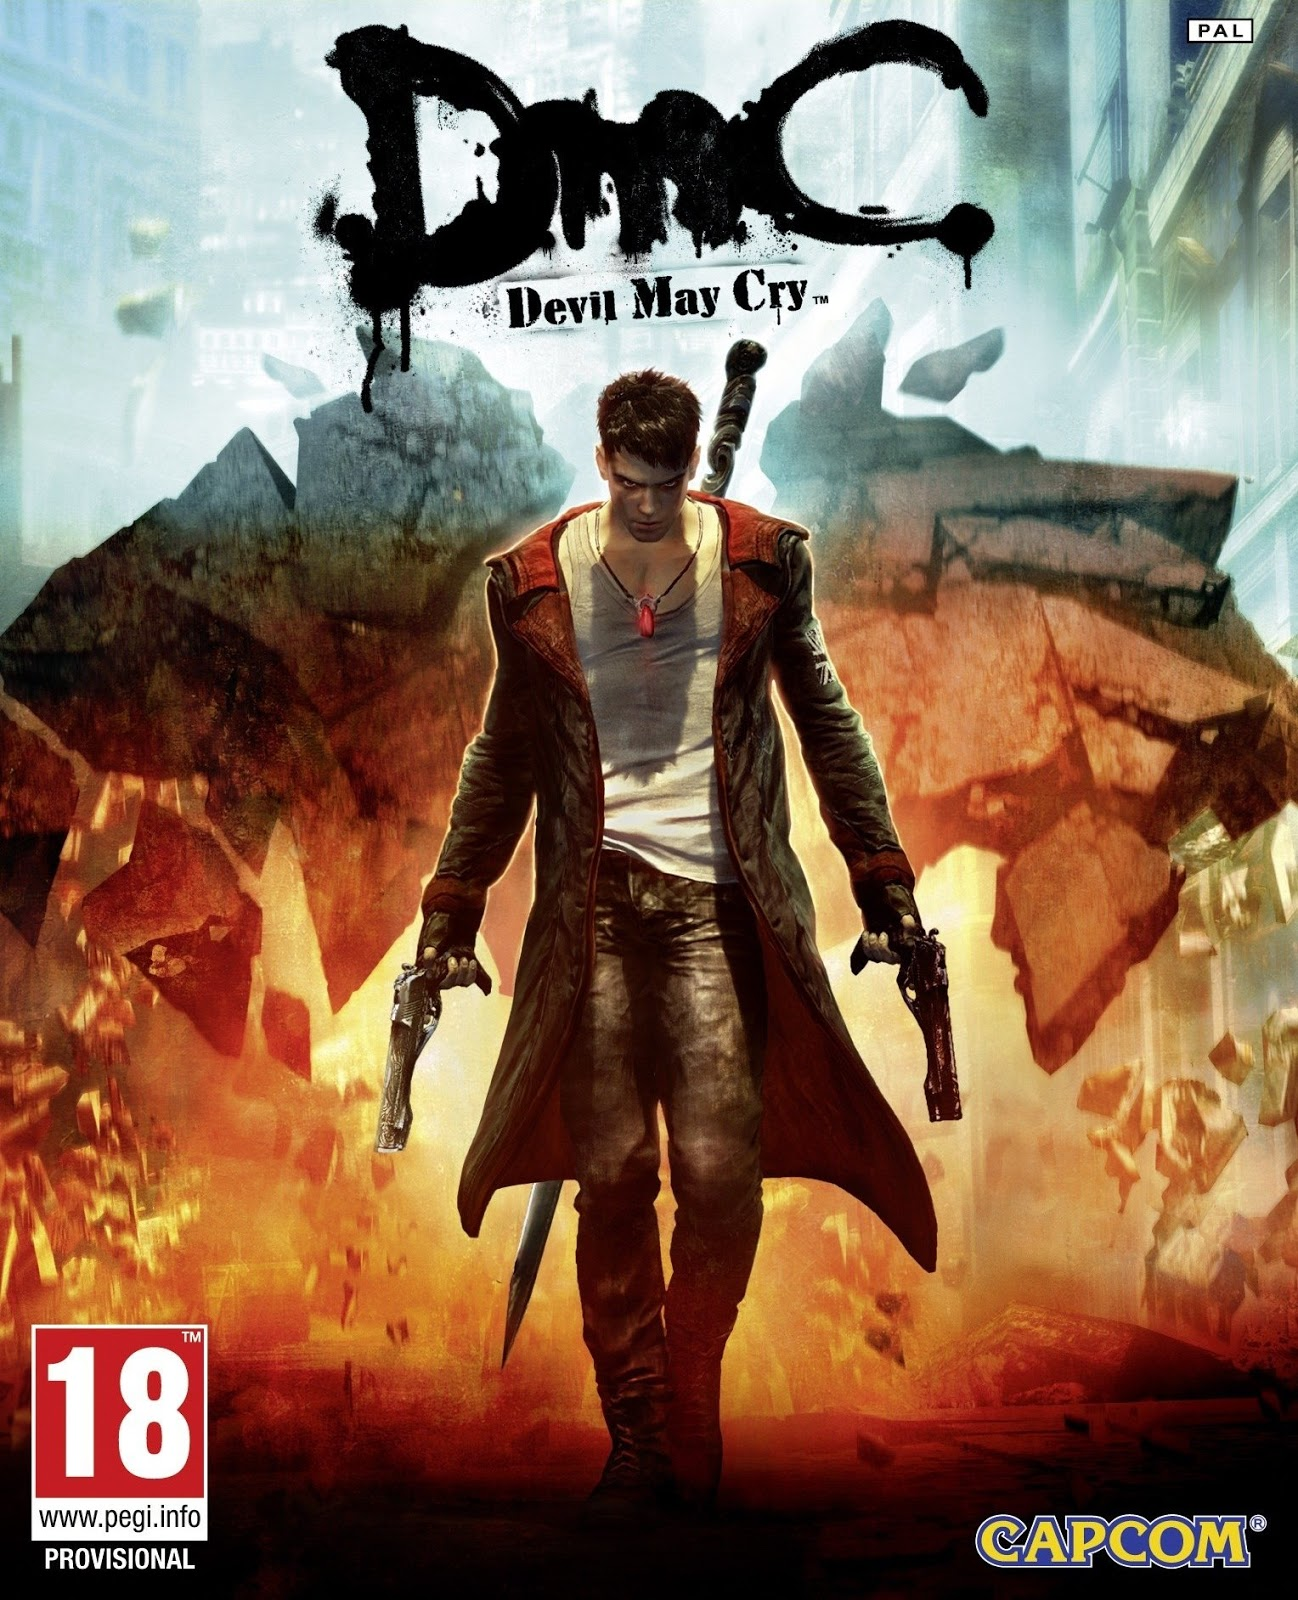 Devil May Cry 5 - game of 2019 43